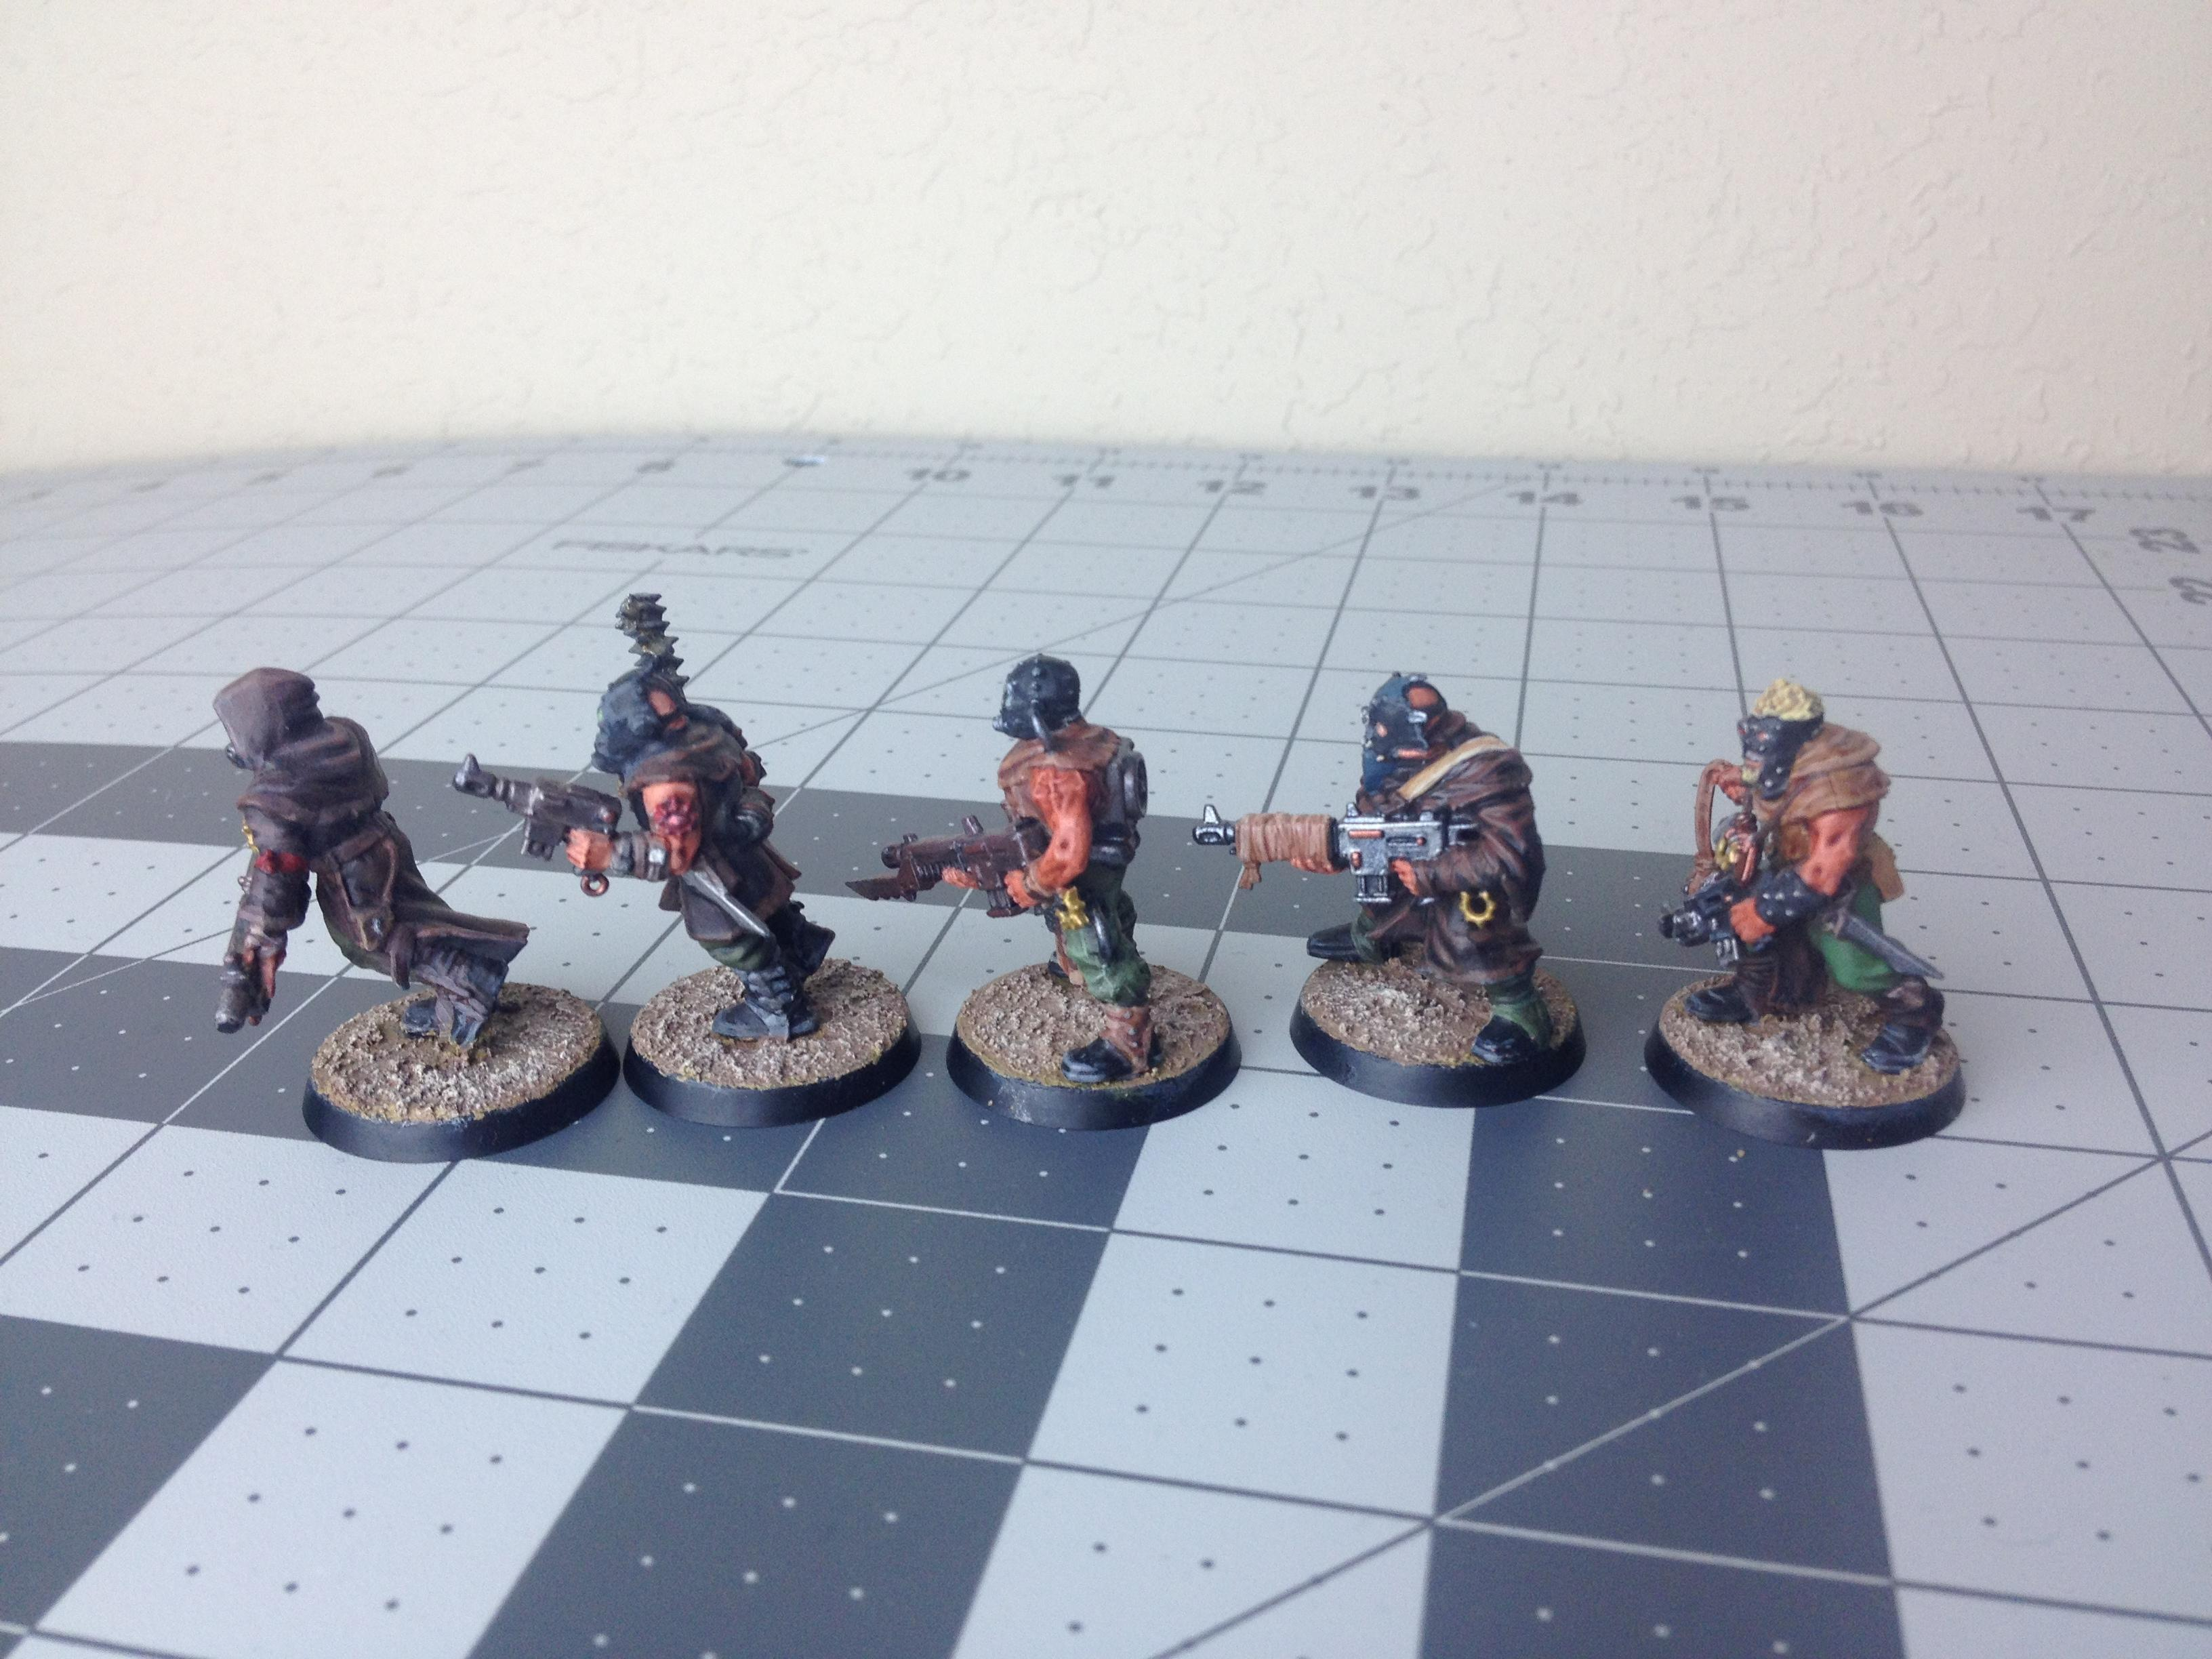 Based, Chaos, Cultists, Finished, Side, Warhammer 40,000